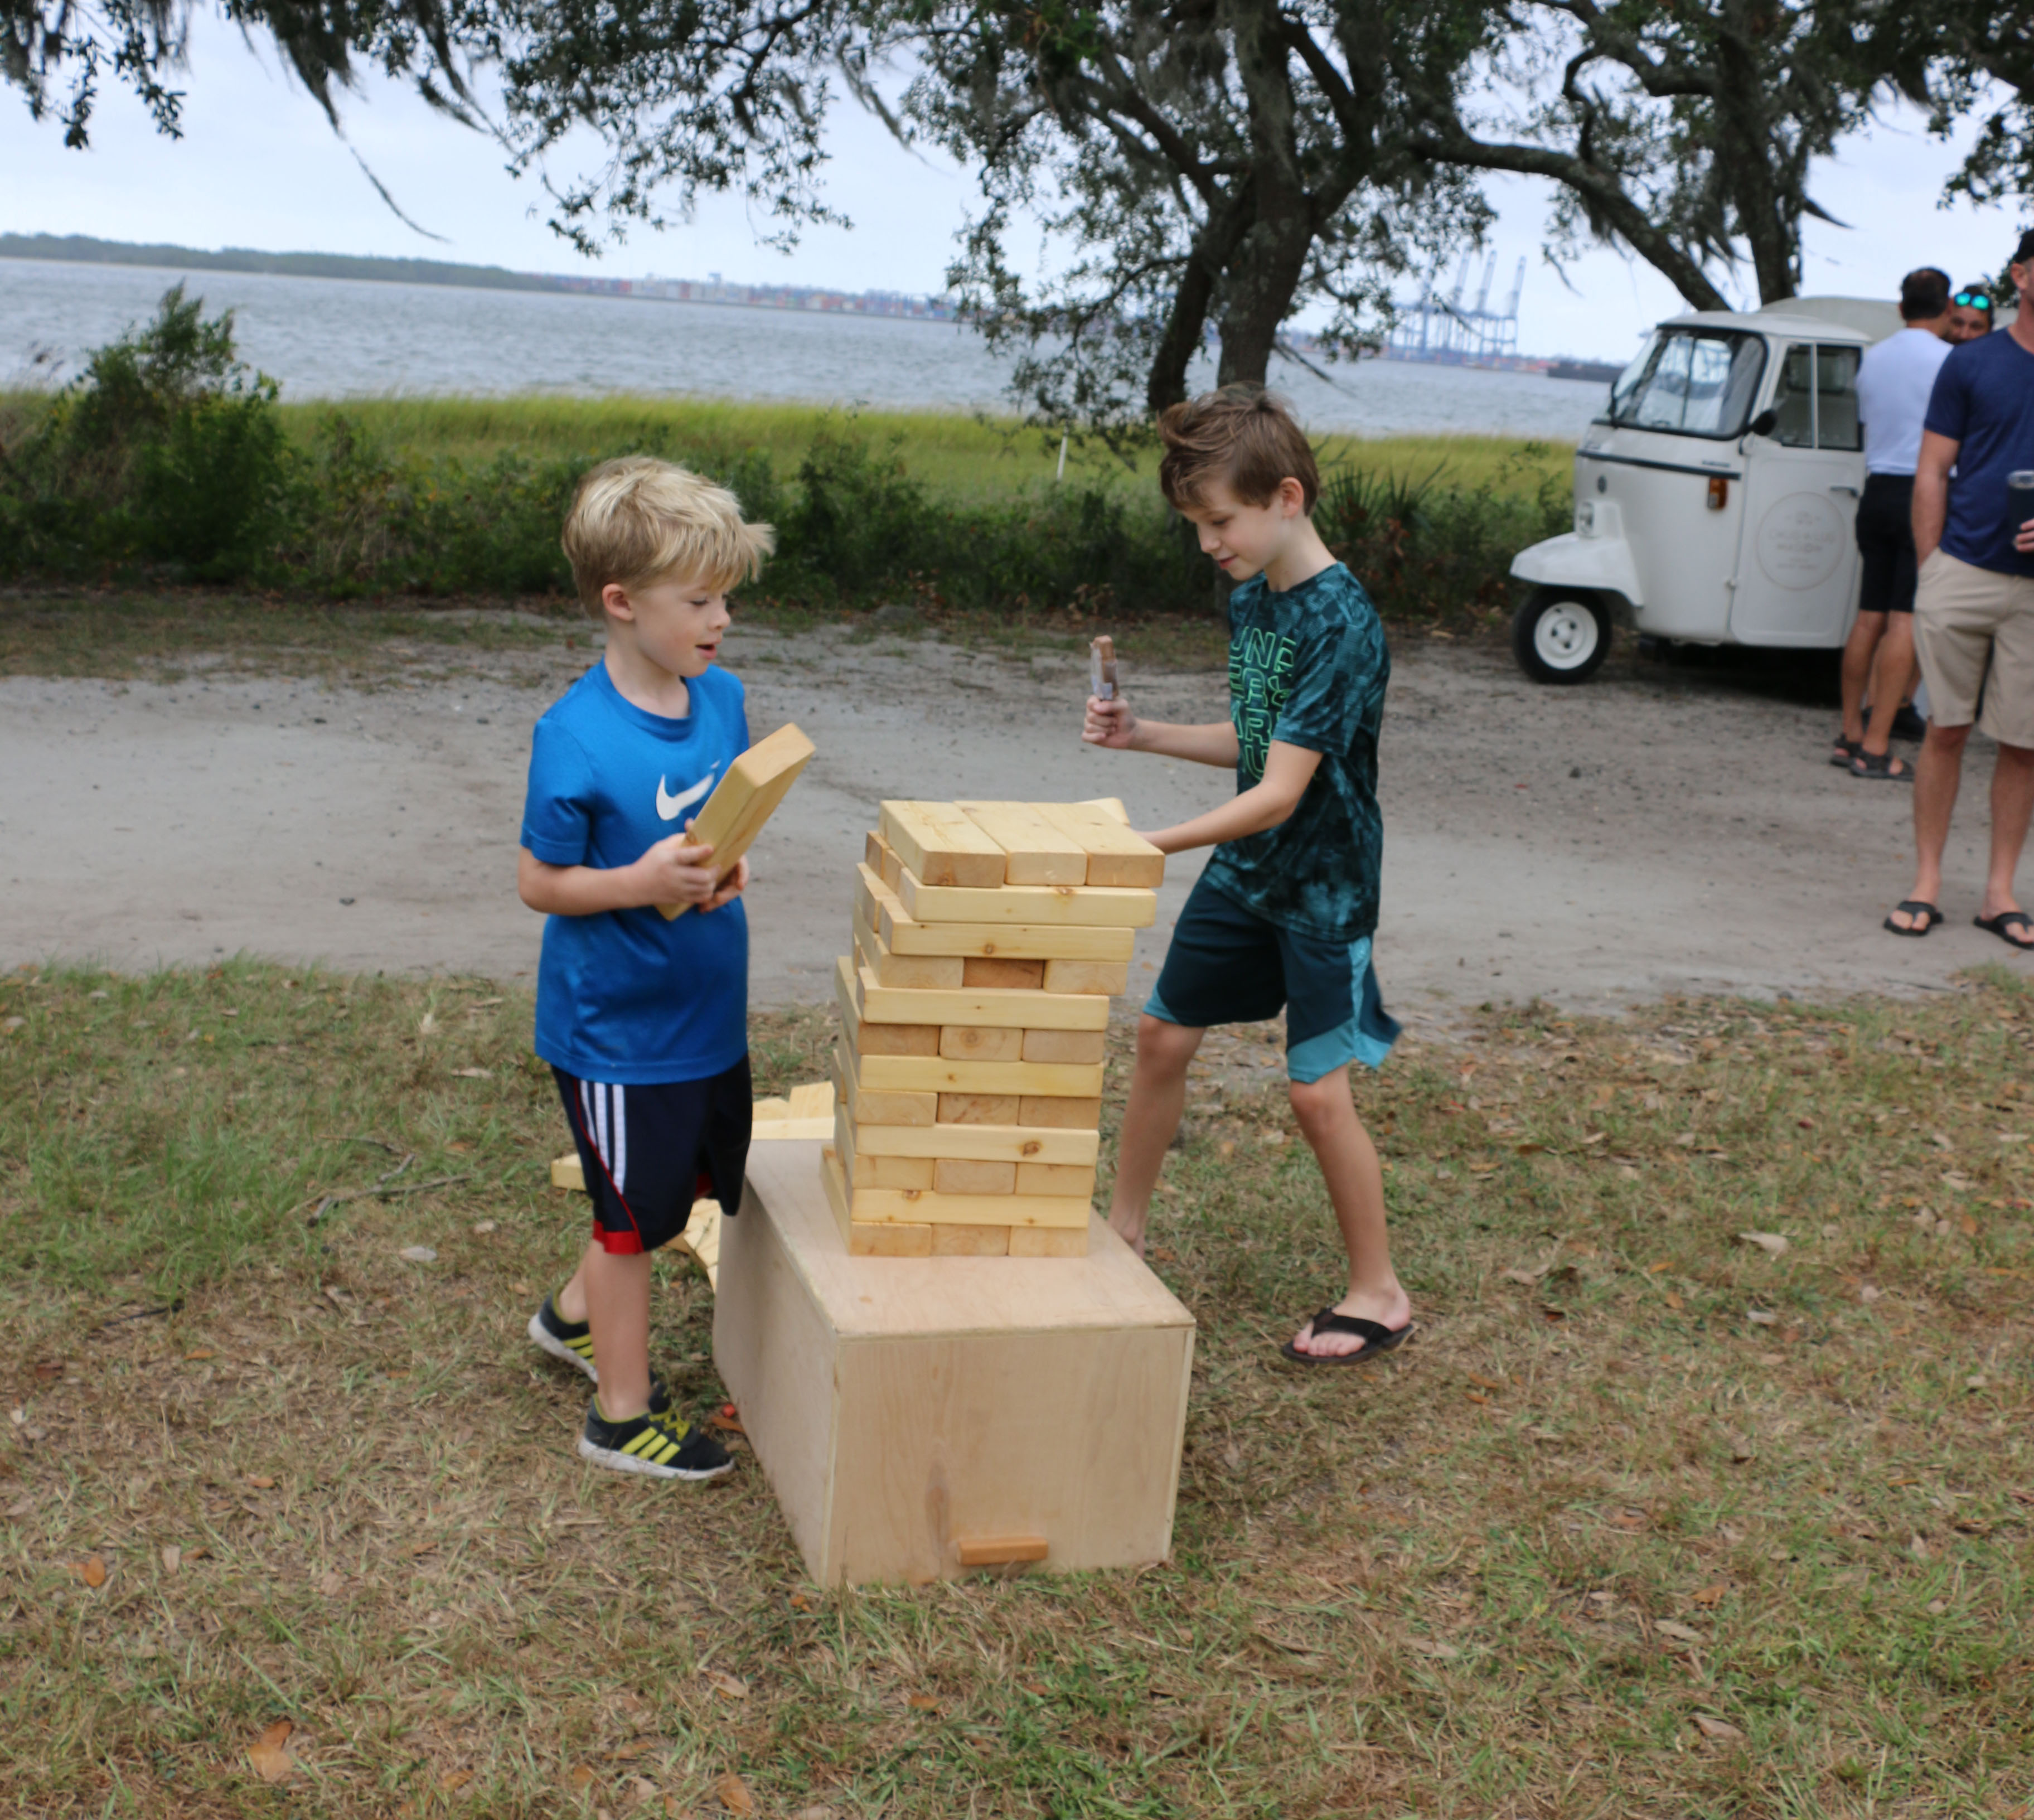 Boys have fun building and playing with a giant Jenga set.